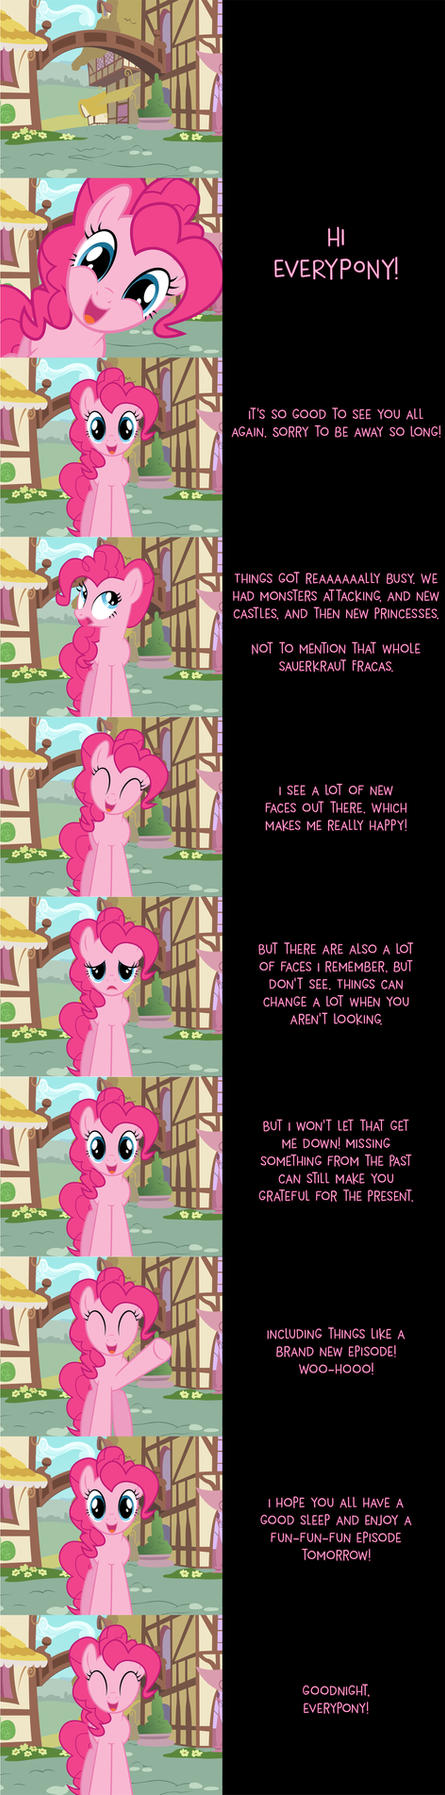 Pinkie Pie Says Goodnight 7-29-2016 by MLP-Silver-Quill